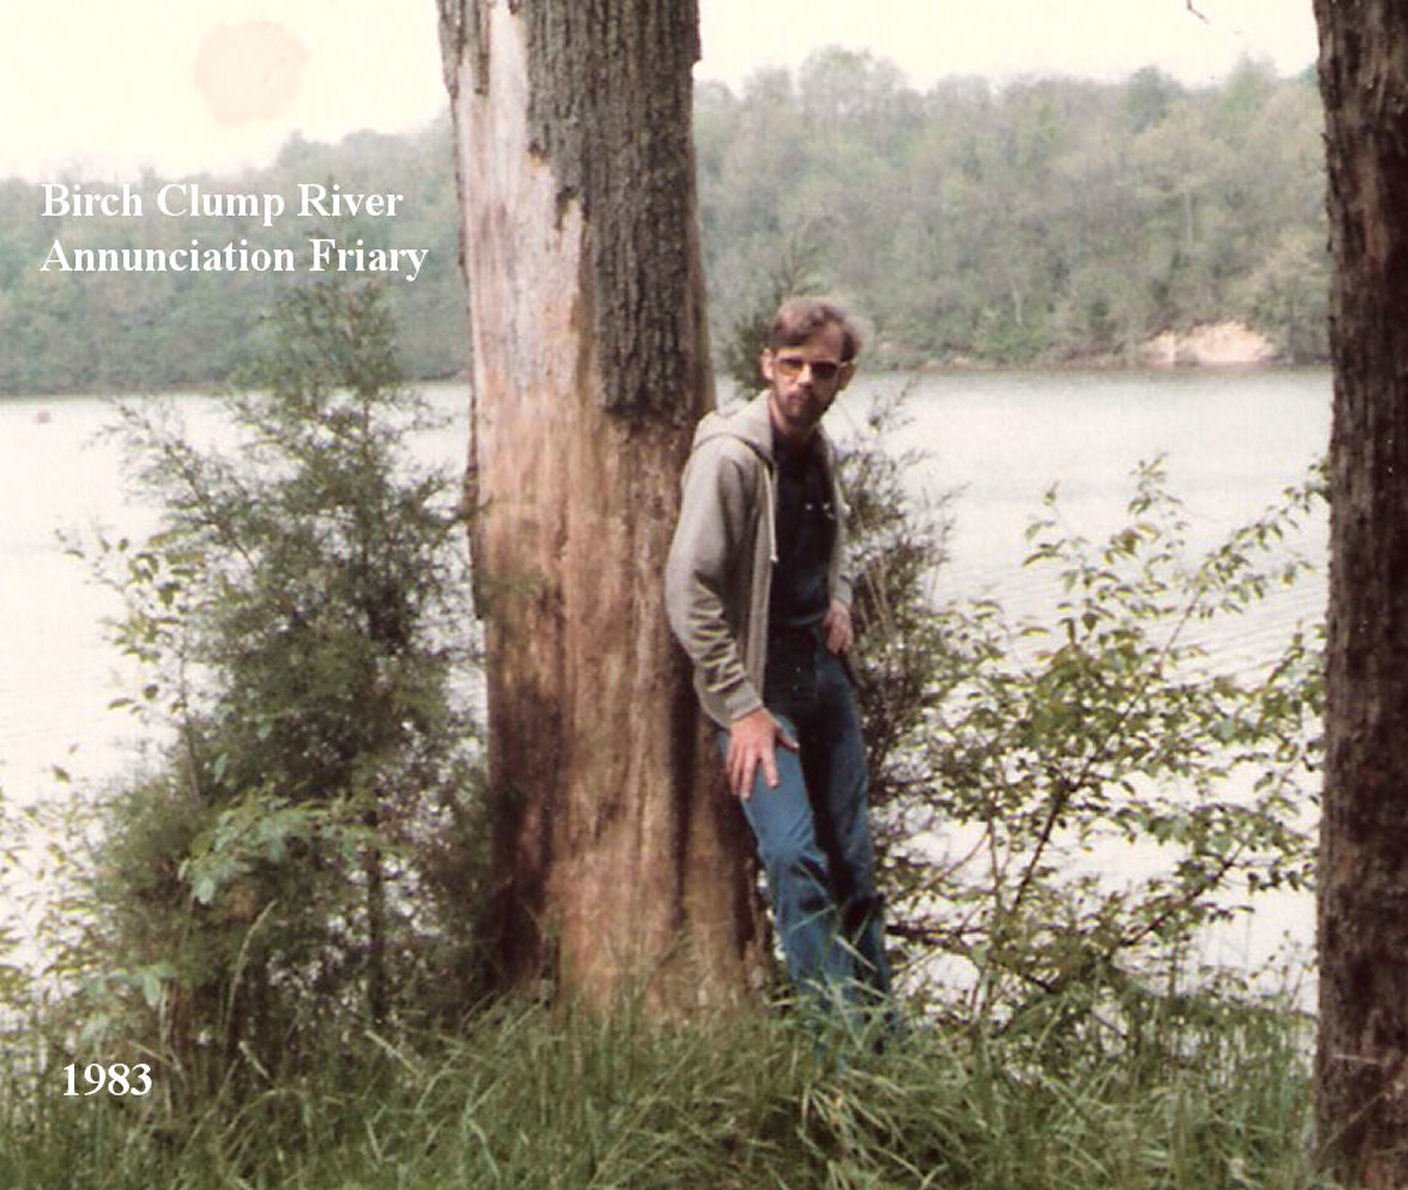 Liberty State Park, IN. Used for view of fictional Birch Clump River. Earlier 1980s